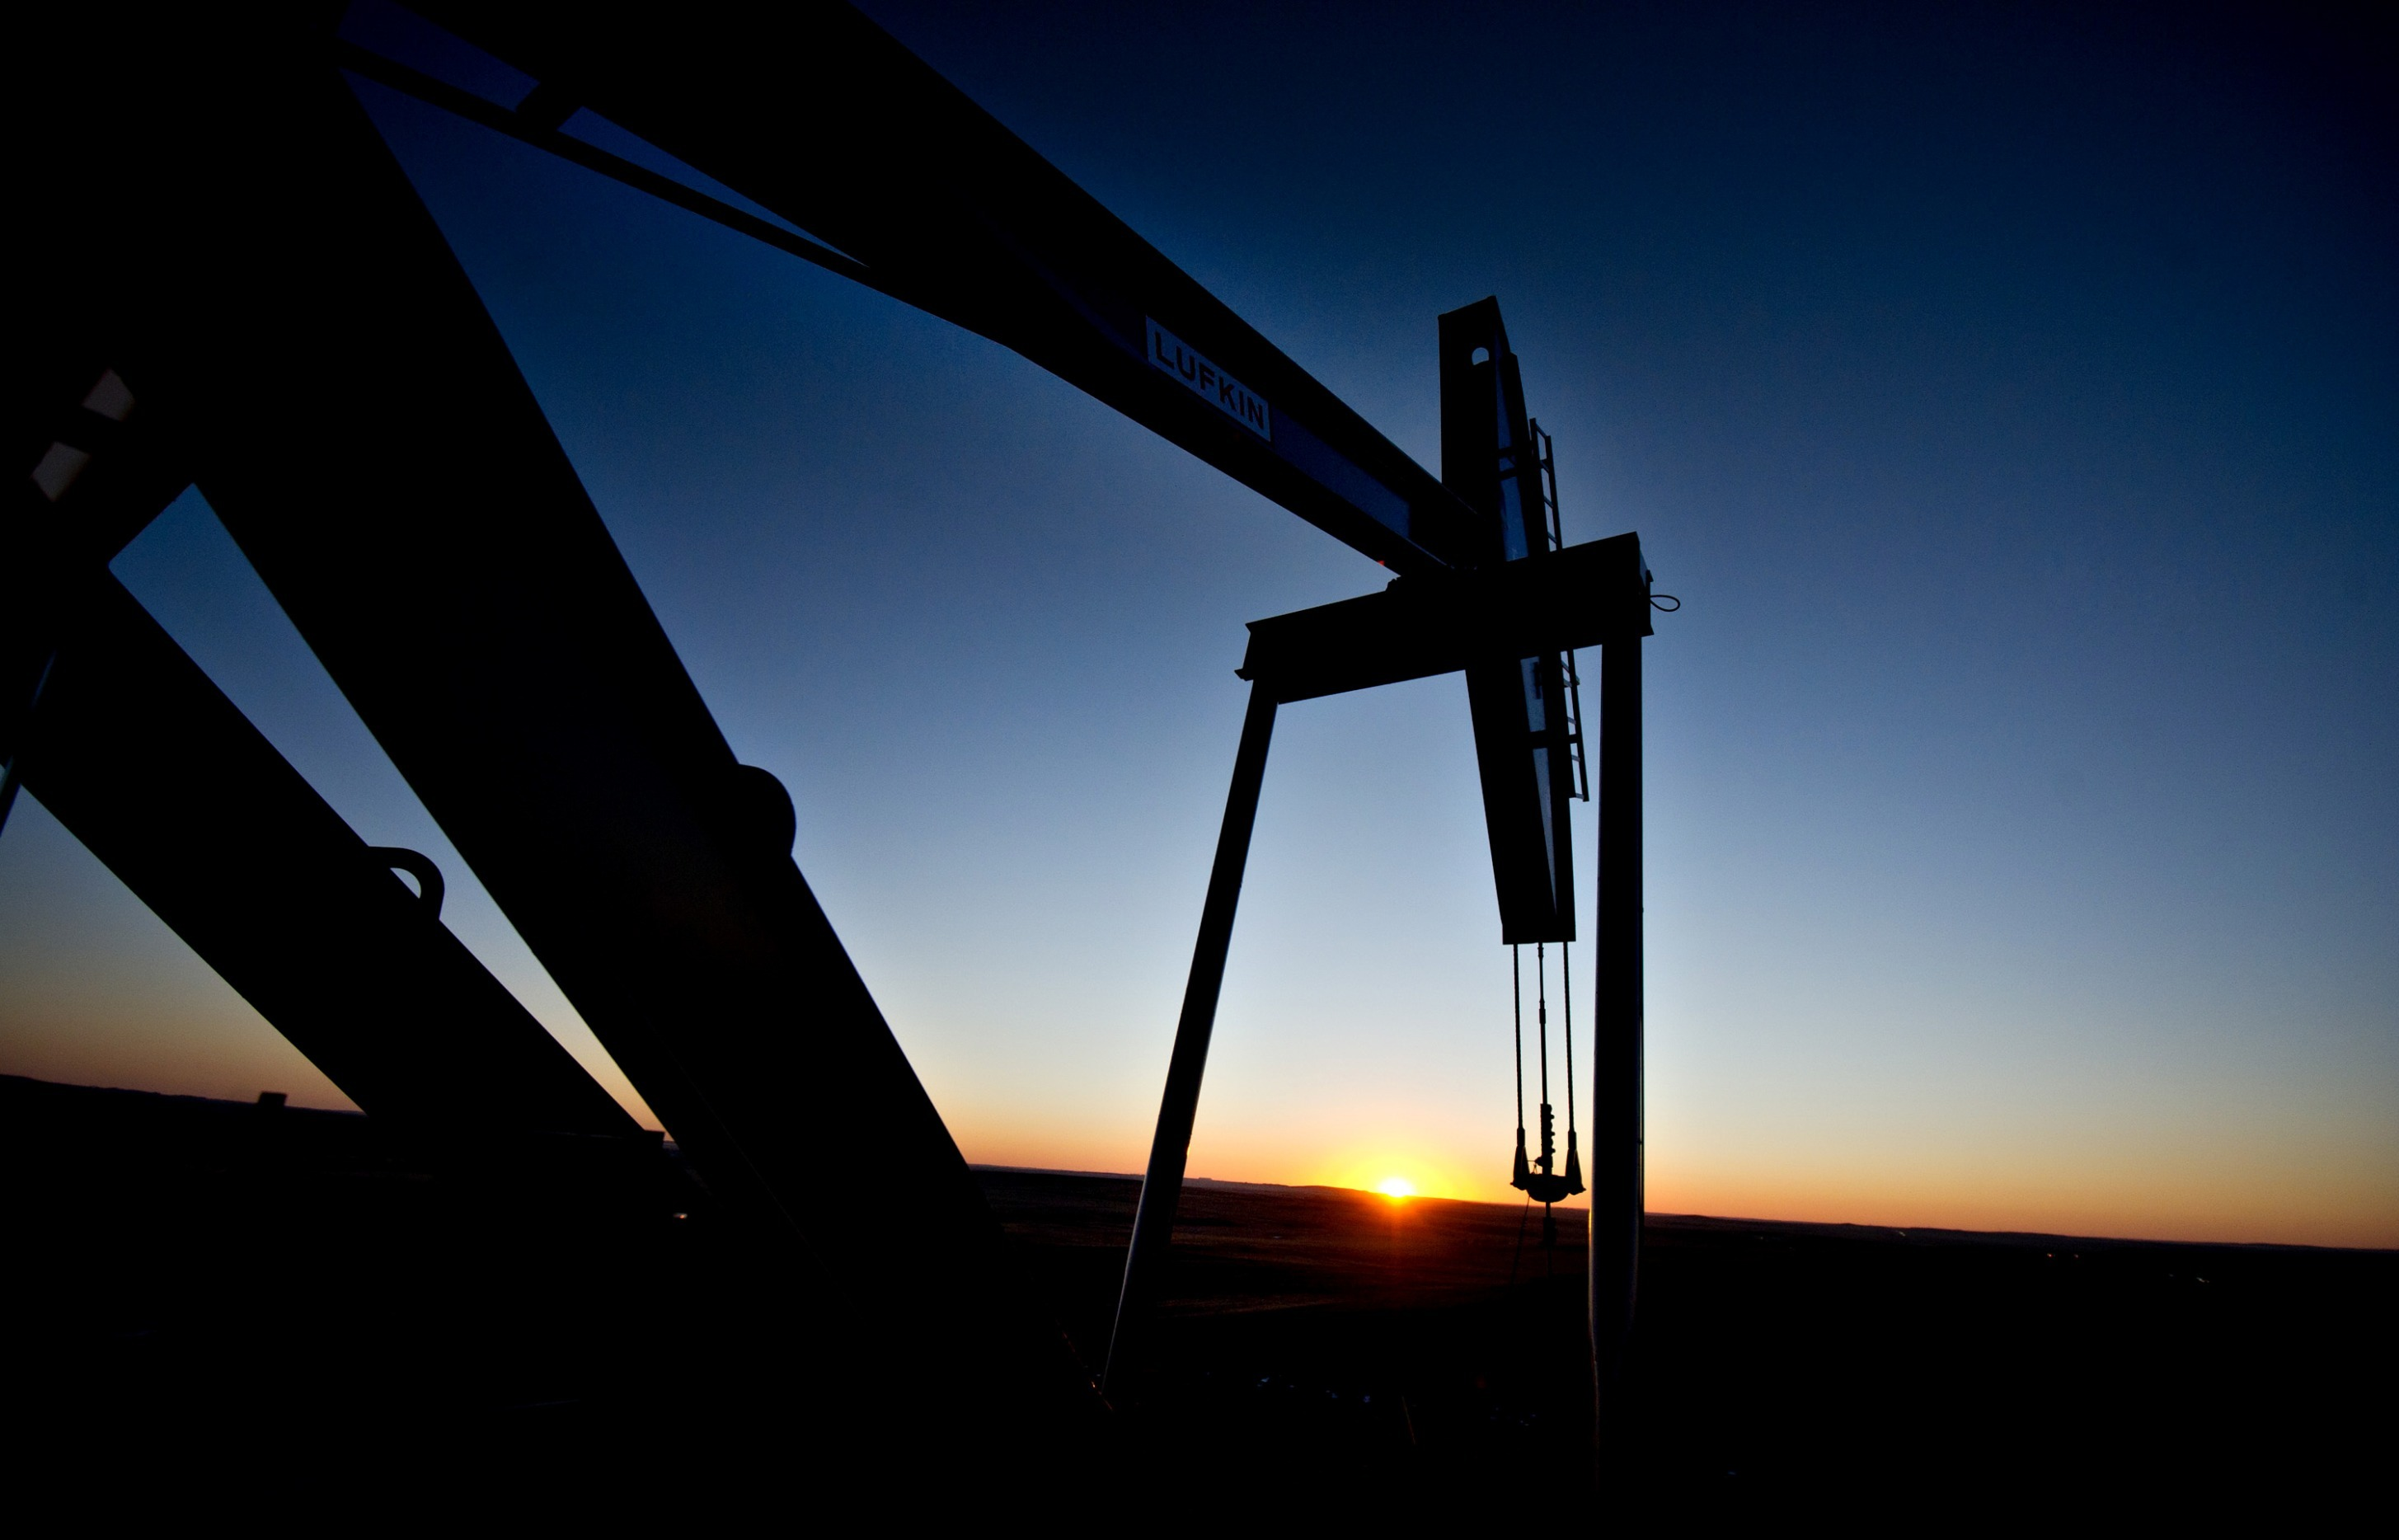 A Lufkin Industries Inc. Mark II Unitorque electric pumping unit removes crude oil from a Fidelity Exploration & Production Co. well outside South Heart, North Dakota, U.S. Photographer: Daniel Acker/Bloomberg